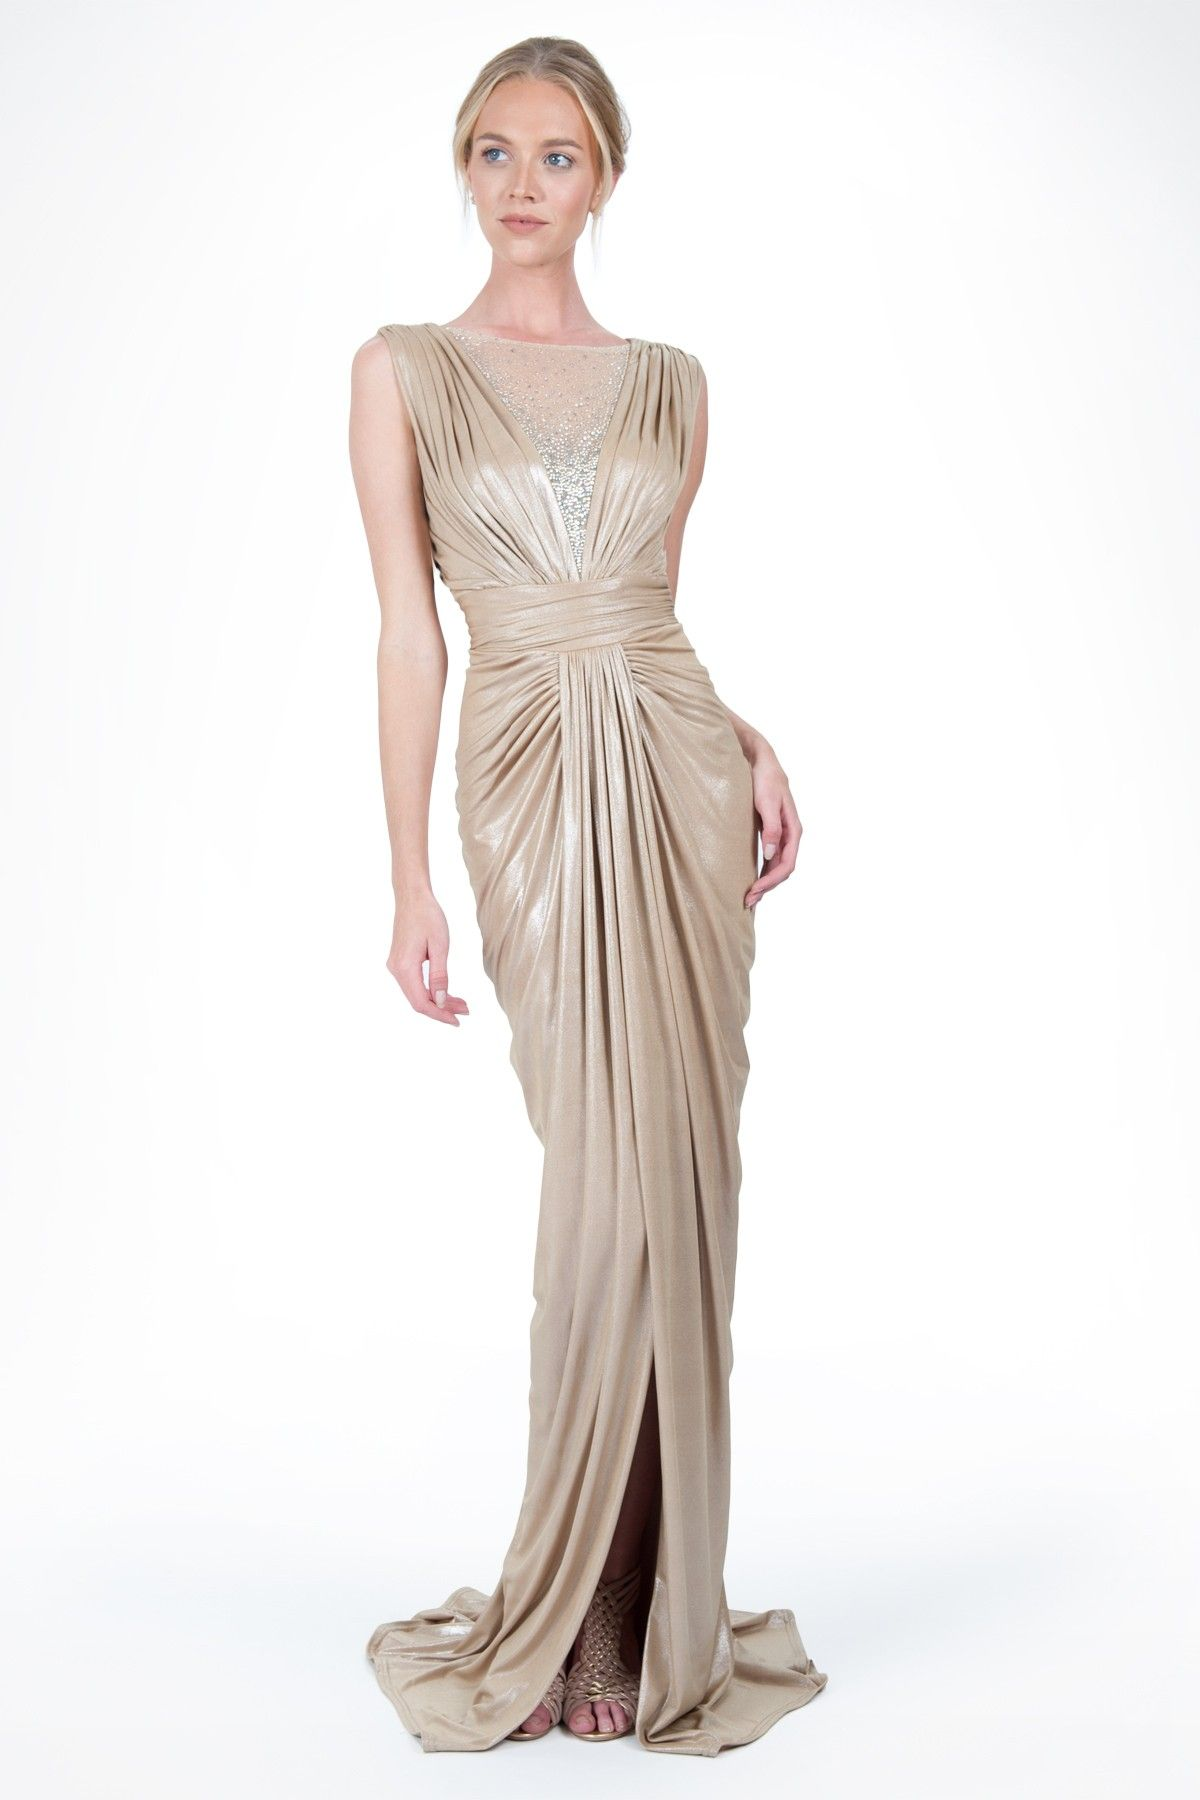 47561cdfdb Daughter s Prom Dress - Metallic Jersey Draped Gown with Rhinestone Tulle  Detail in Champagne by Tadashi Shoji